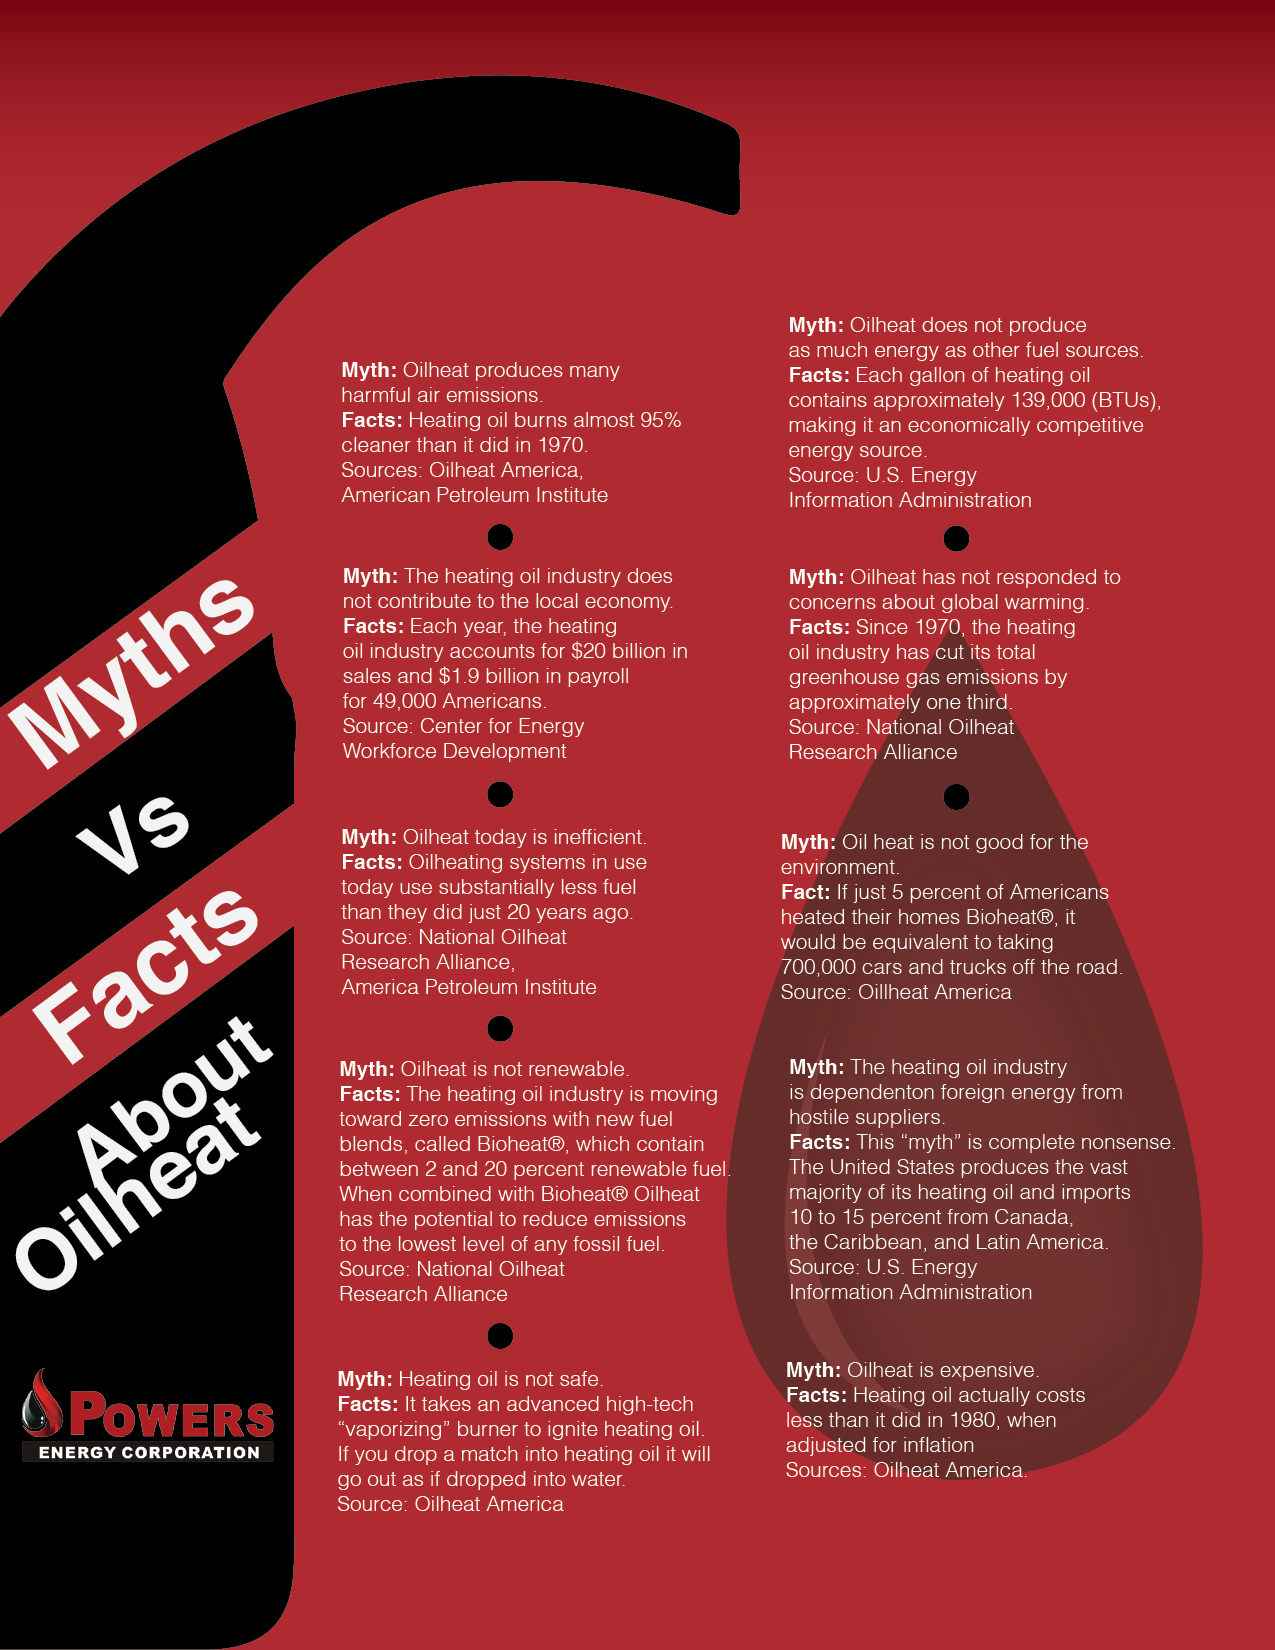 heating oil industry myths vs facts